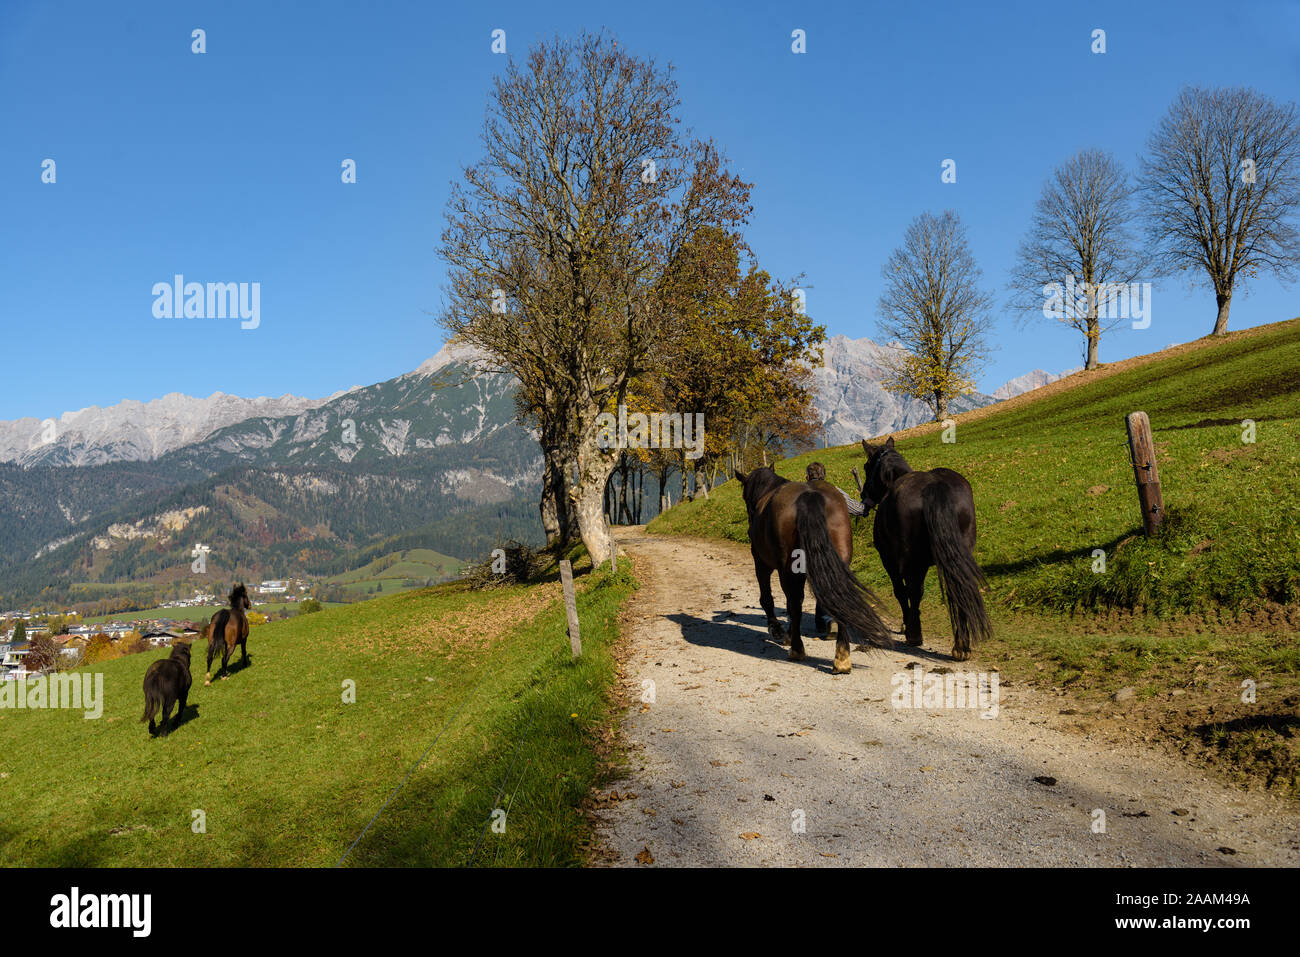 Man leads horses to pasture at lake Ritzenseein Saalfelden, with mountain and clear blue sky in the background, Pinzgau, Salzburg Land, Austria. Stock Photo